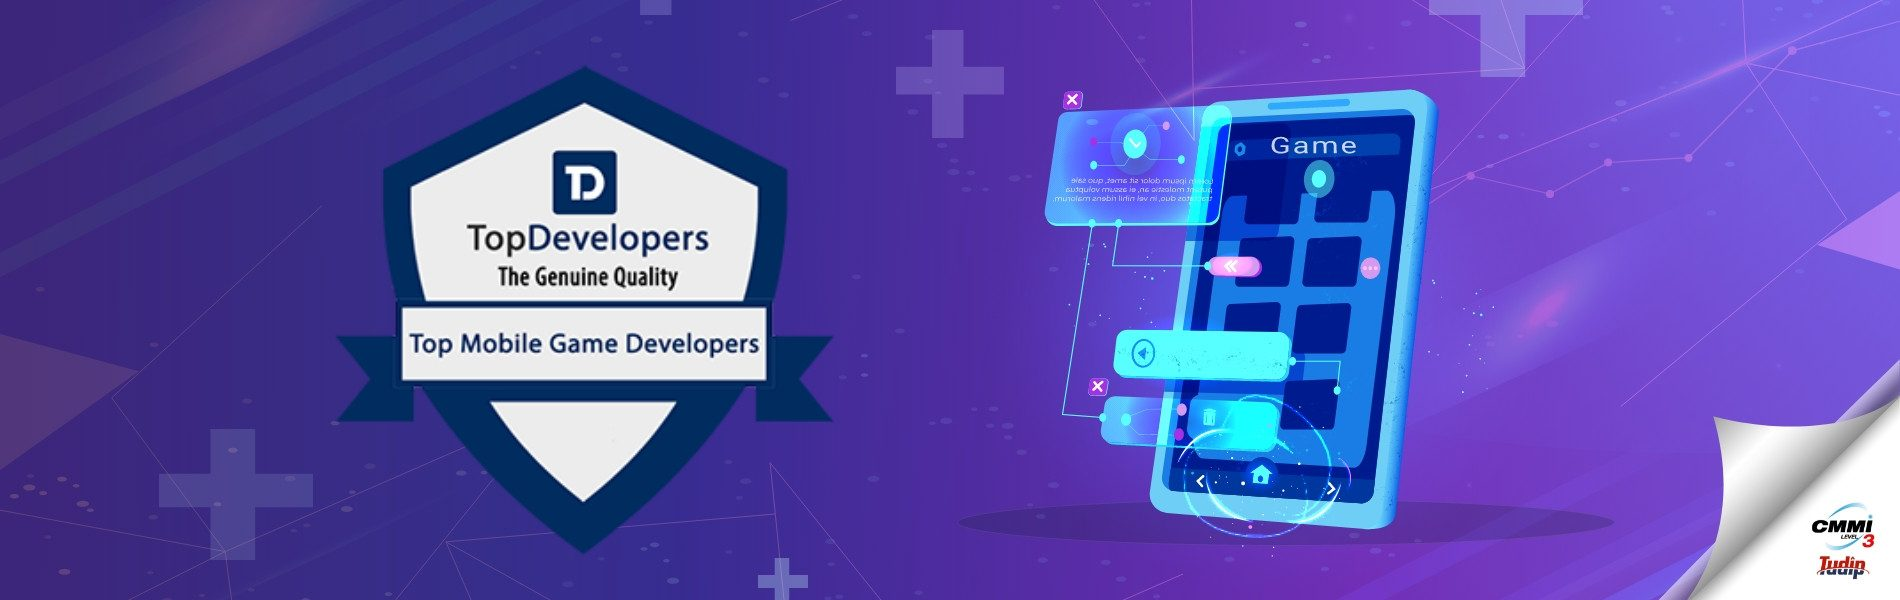 Tudip Technologies stamps its authority as a leading mobile game development company in 2021